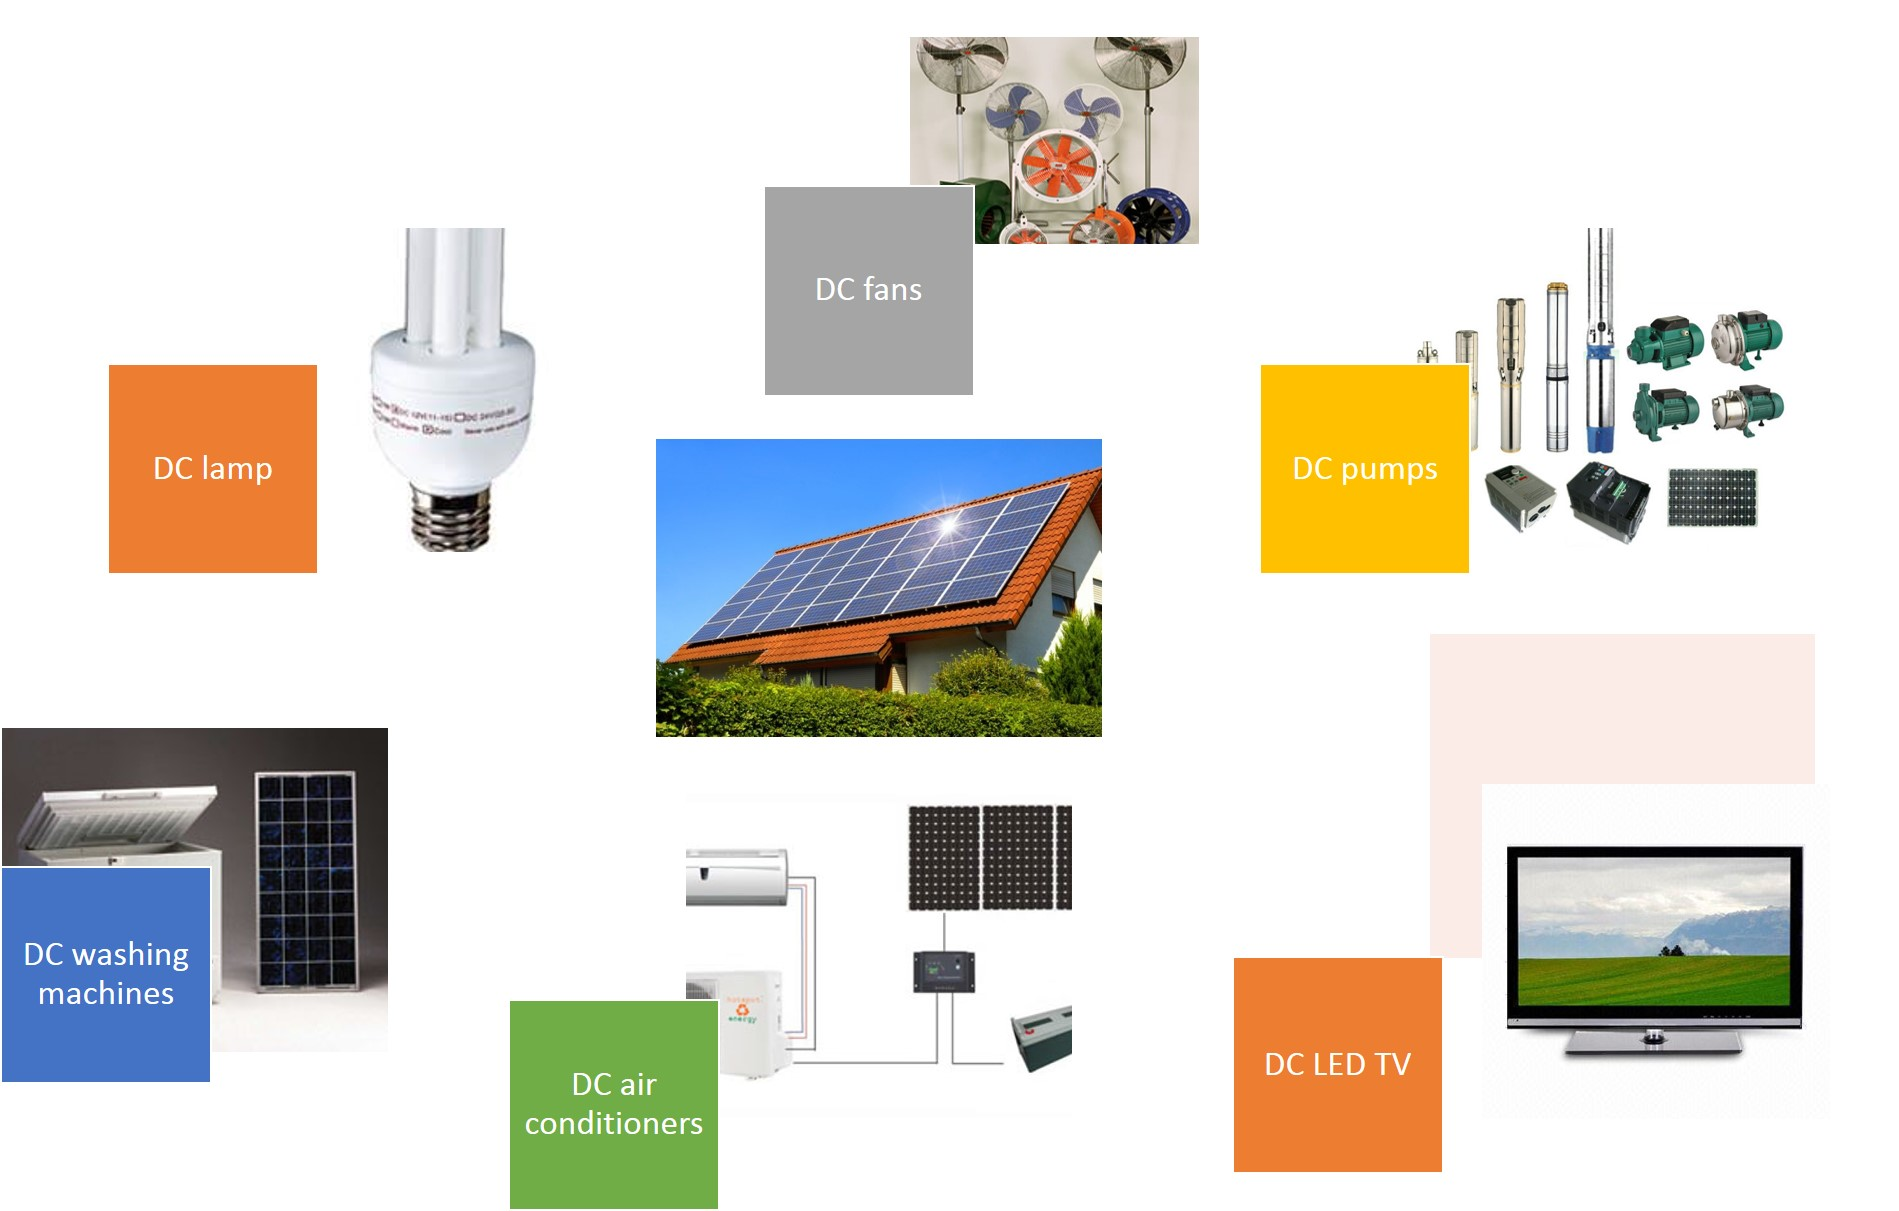 House Battery Bank Wiring Residential Electrical Symbols Grid Parity On Solar Will Bring Back Silently Dc Electricity In To Homes Rv 12 Volt Diagram